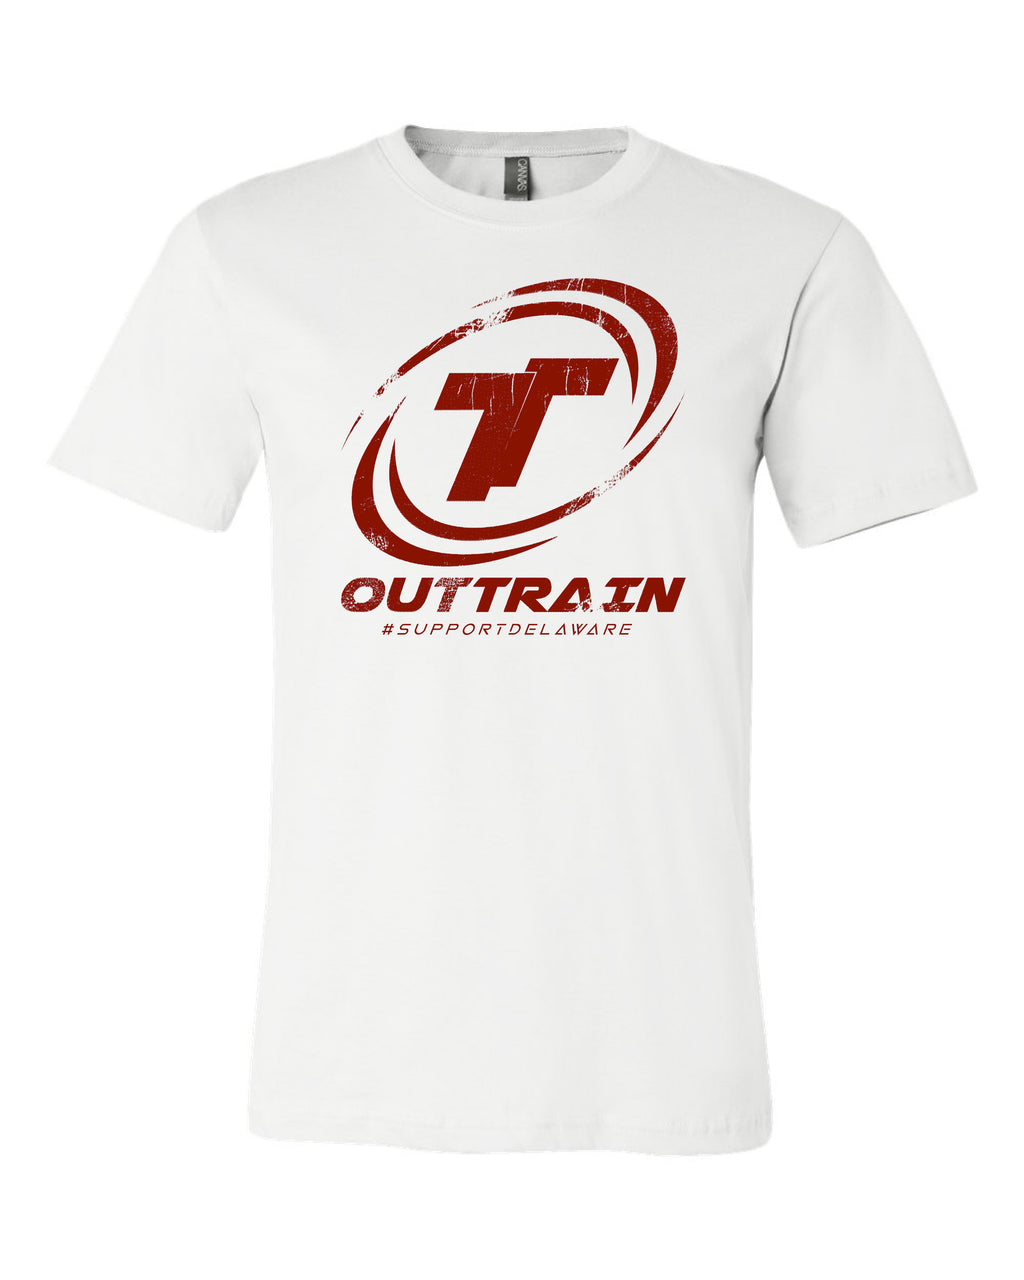 OUTTRAIN Fitness & Performance